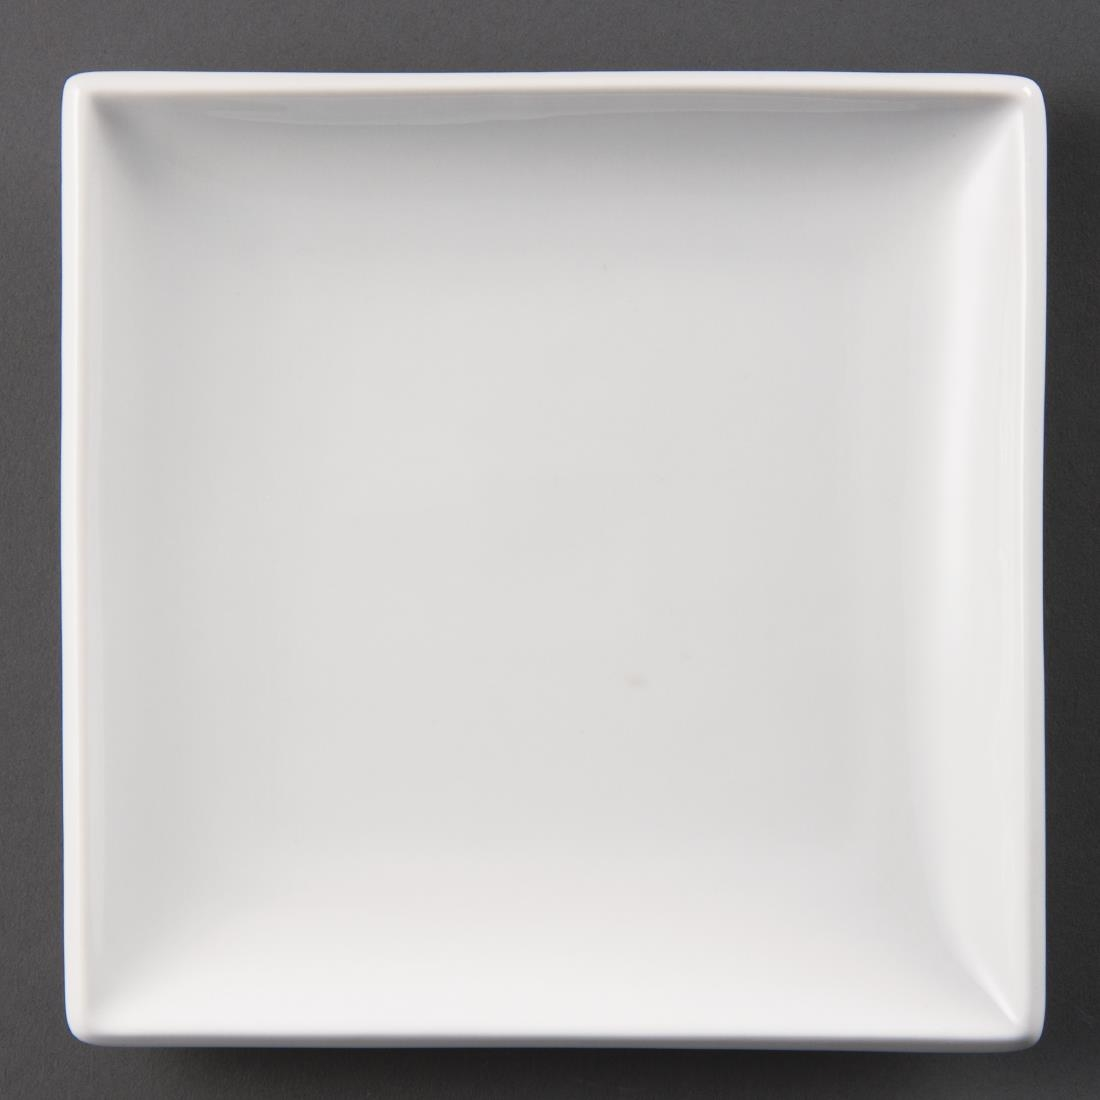 Olympia-Porcelain-Square-Plates-180mm-Pack-of-12- & Olympia Porcelain Square Plates 180mm - Pack of 12 | Food Serving ...